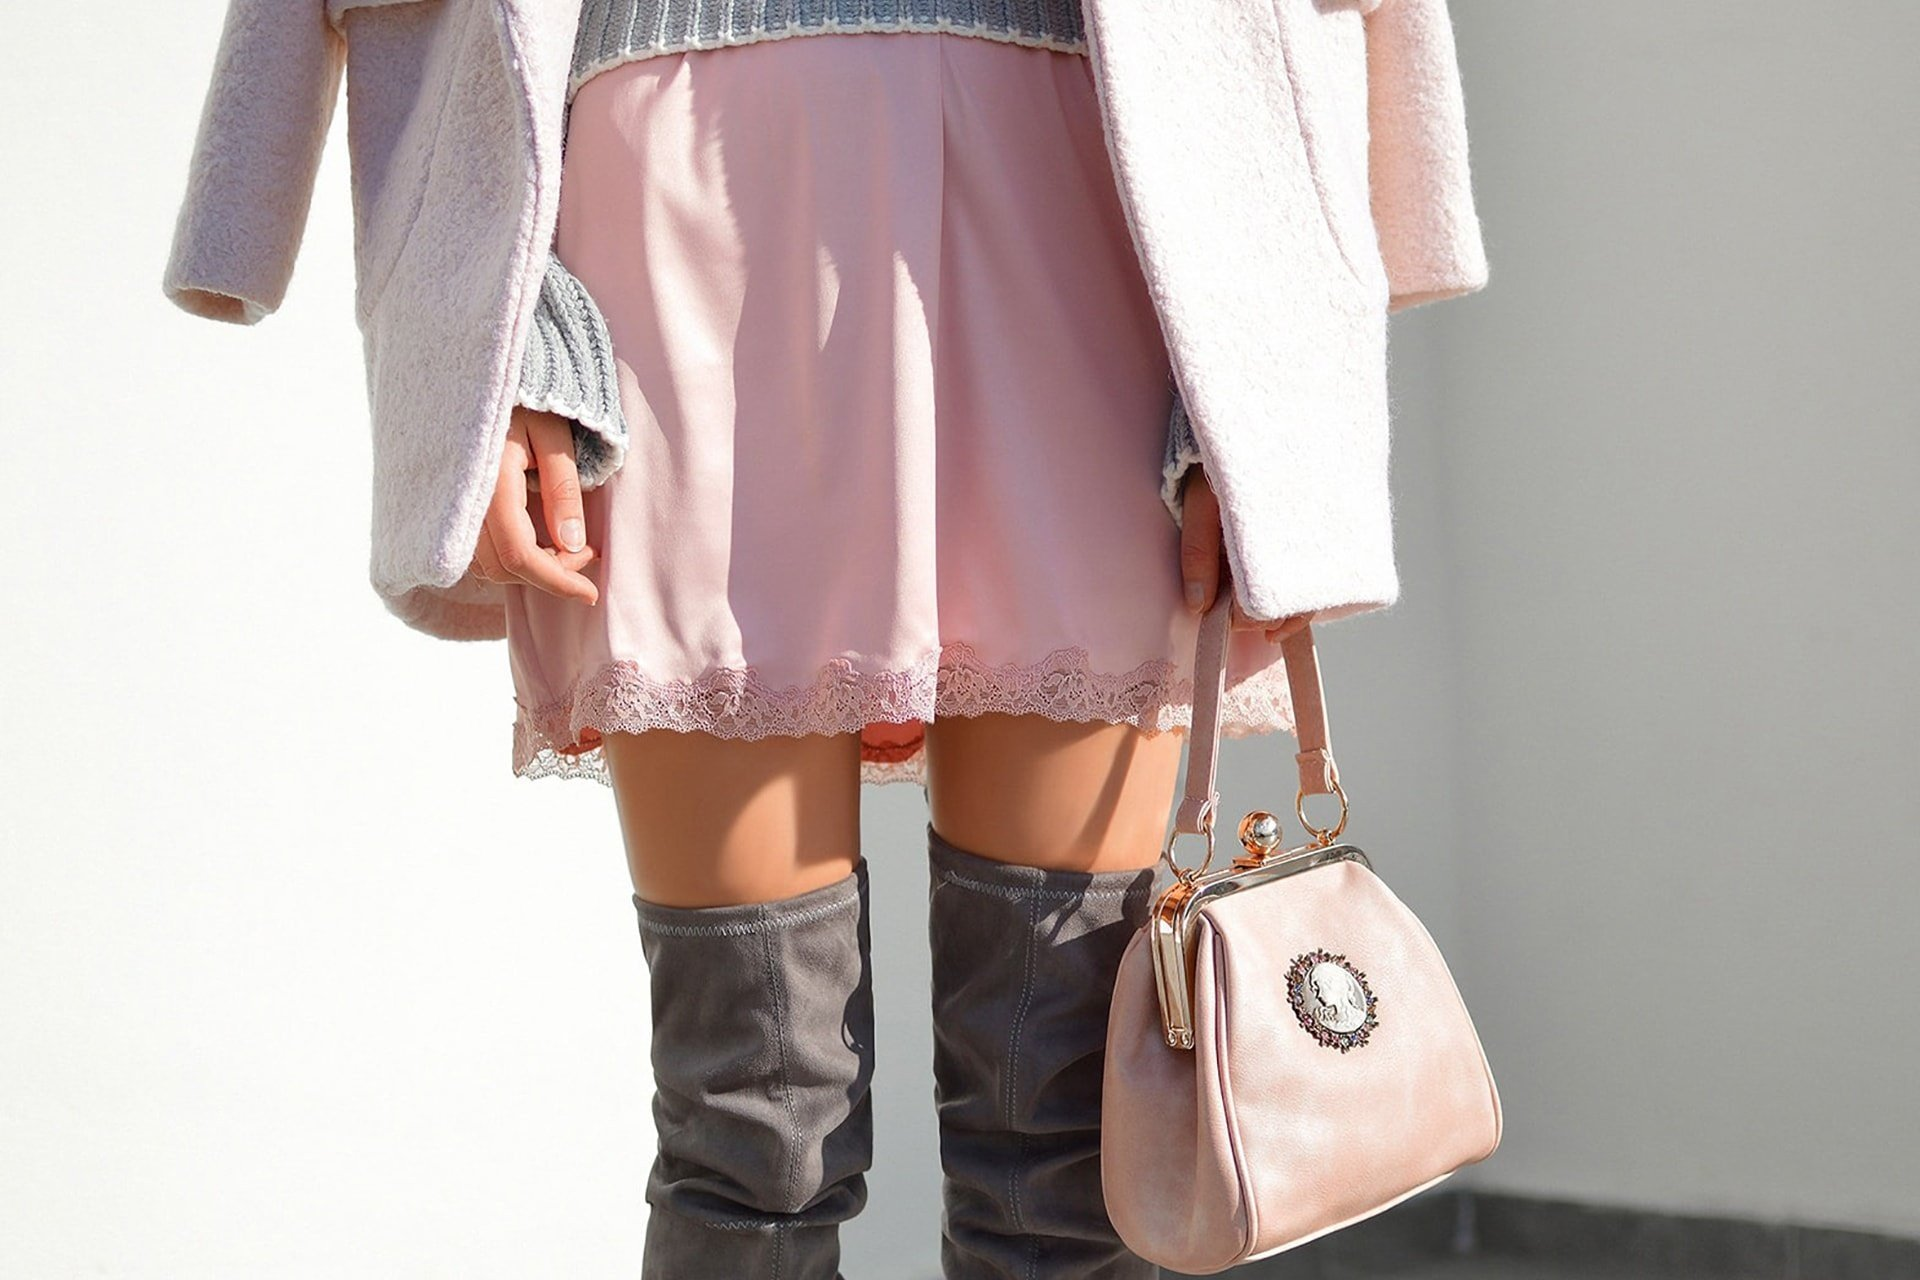 Woman wearing a pink dress and grey boots